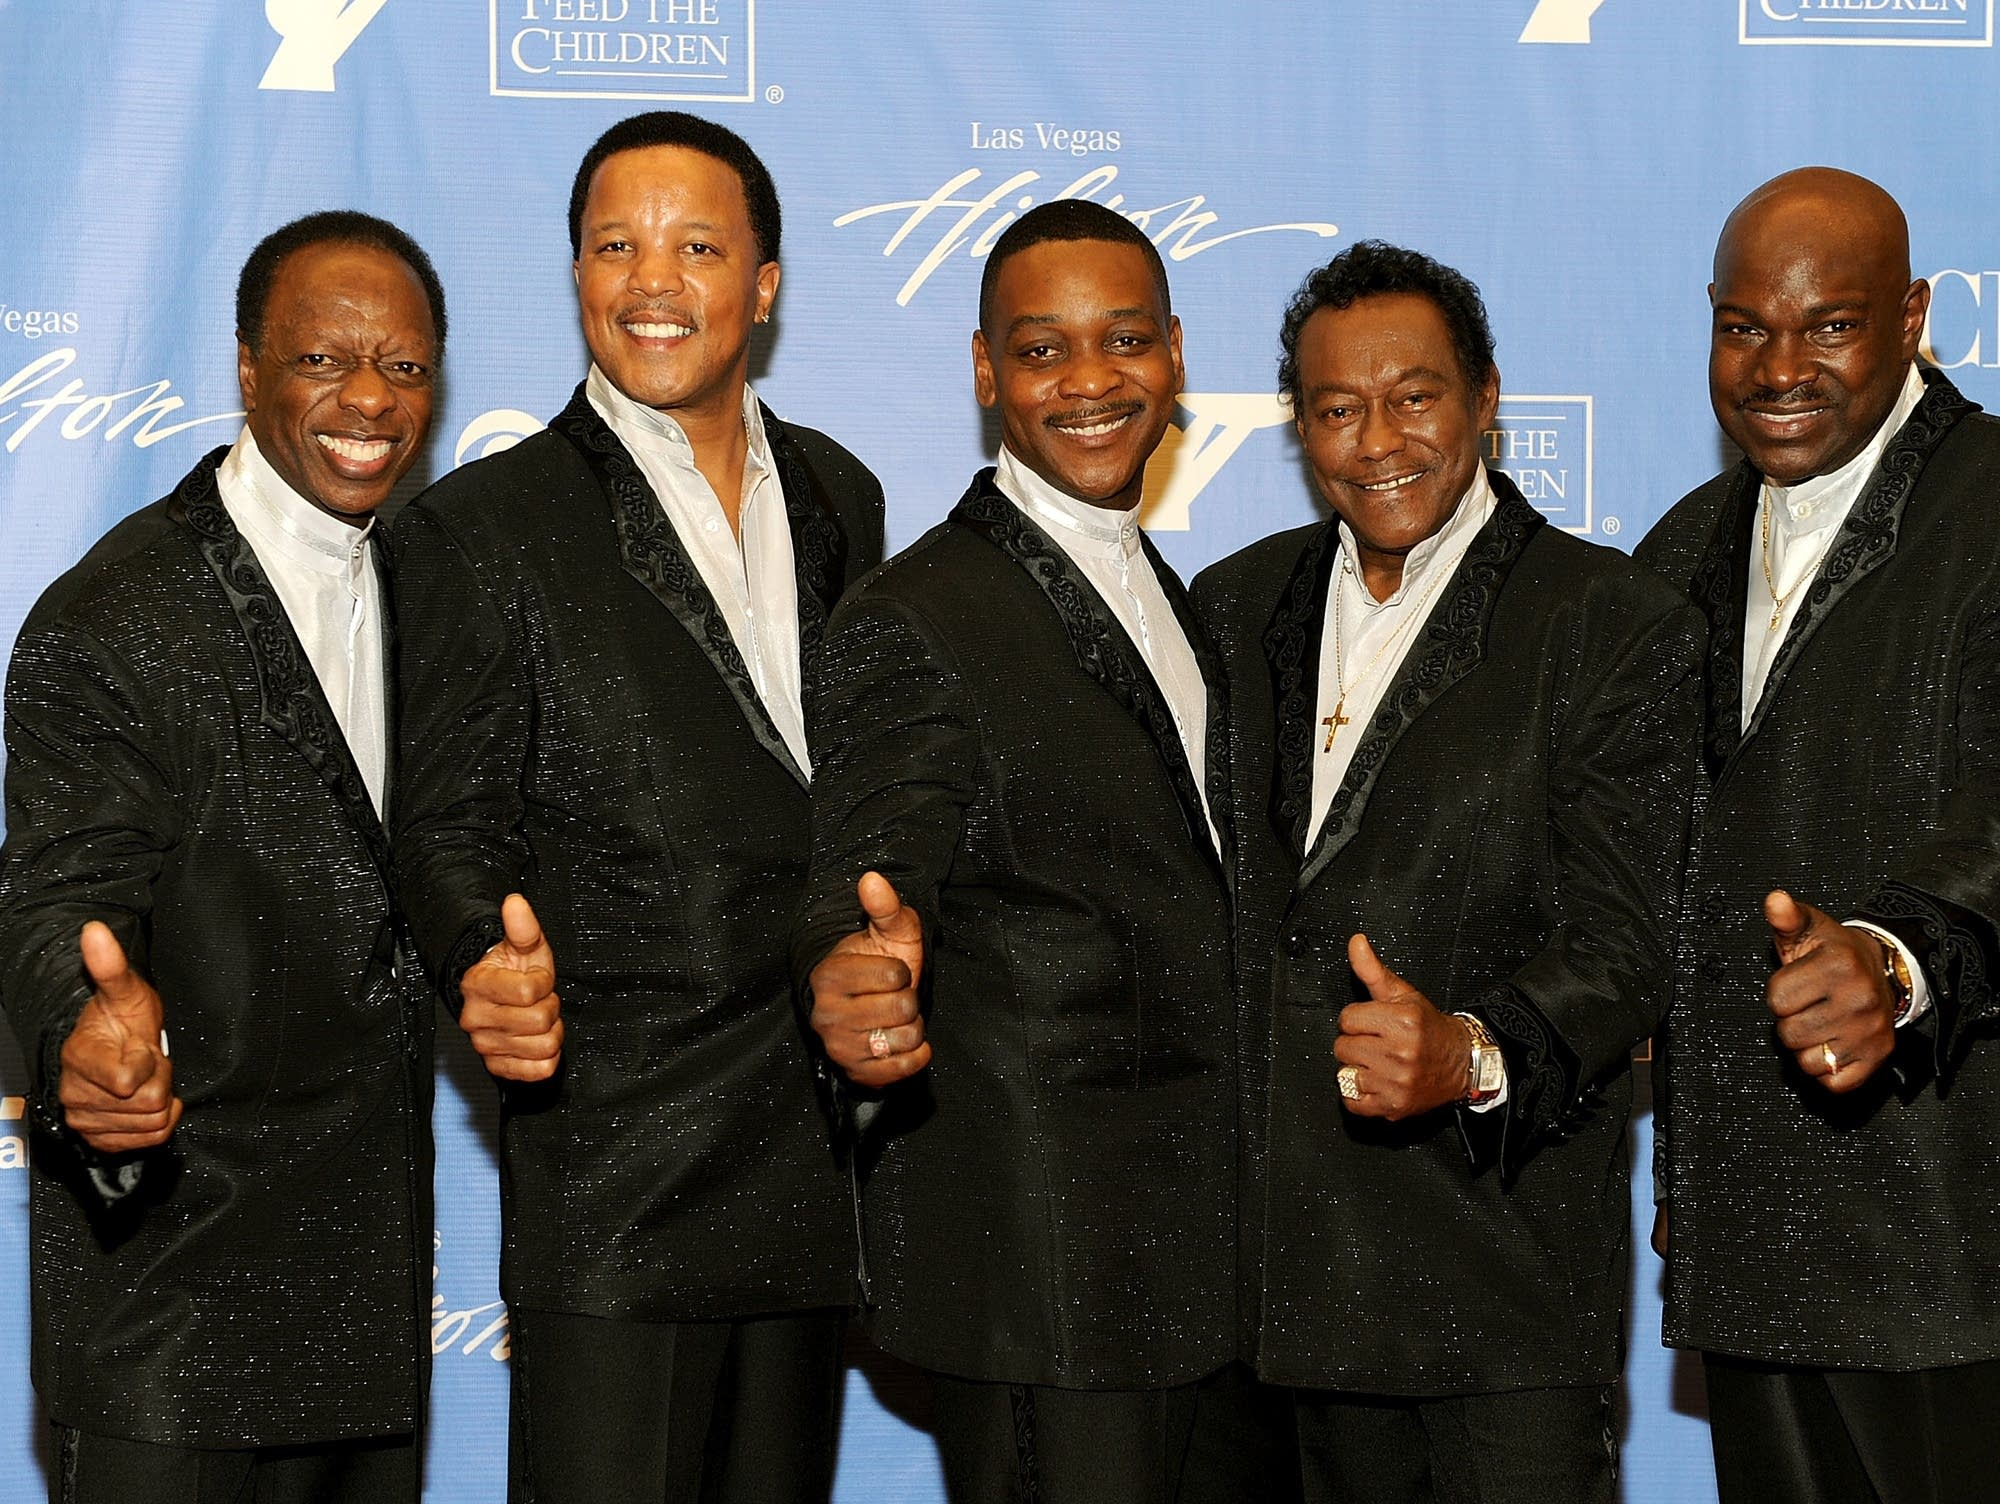 The Spinners in Las Vegas, 2010.